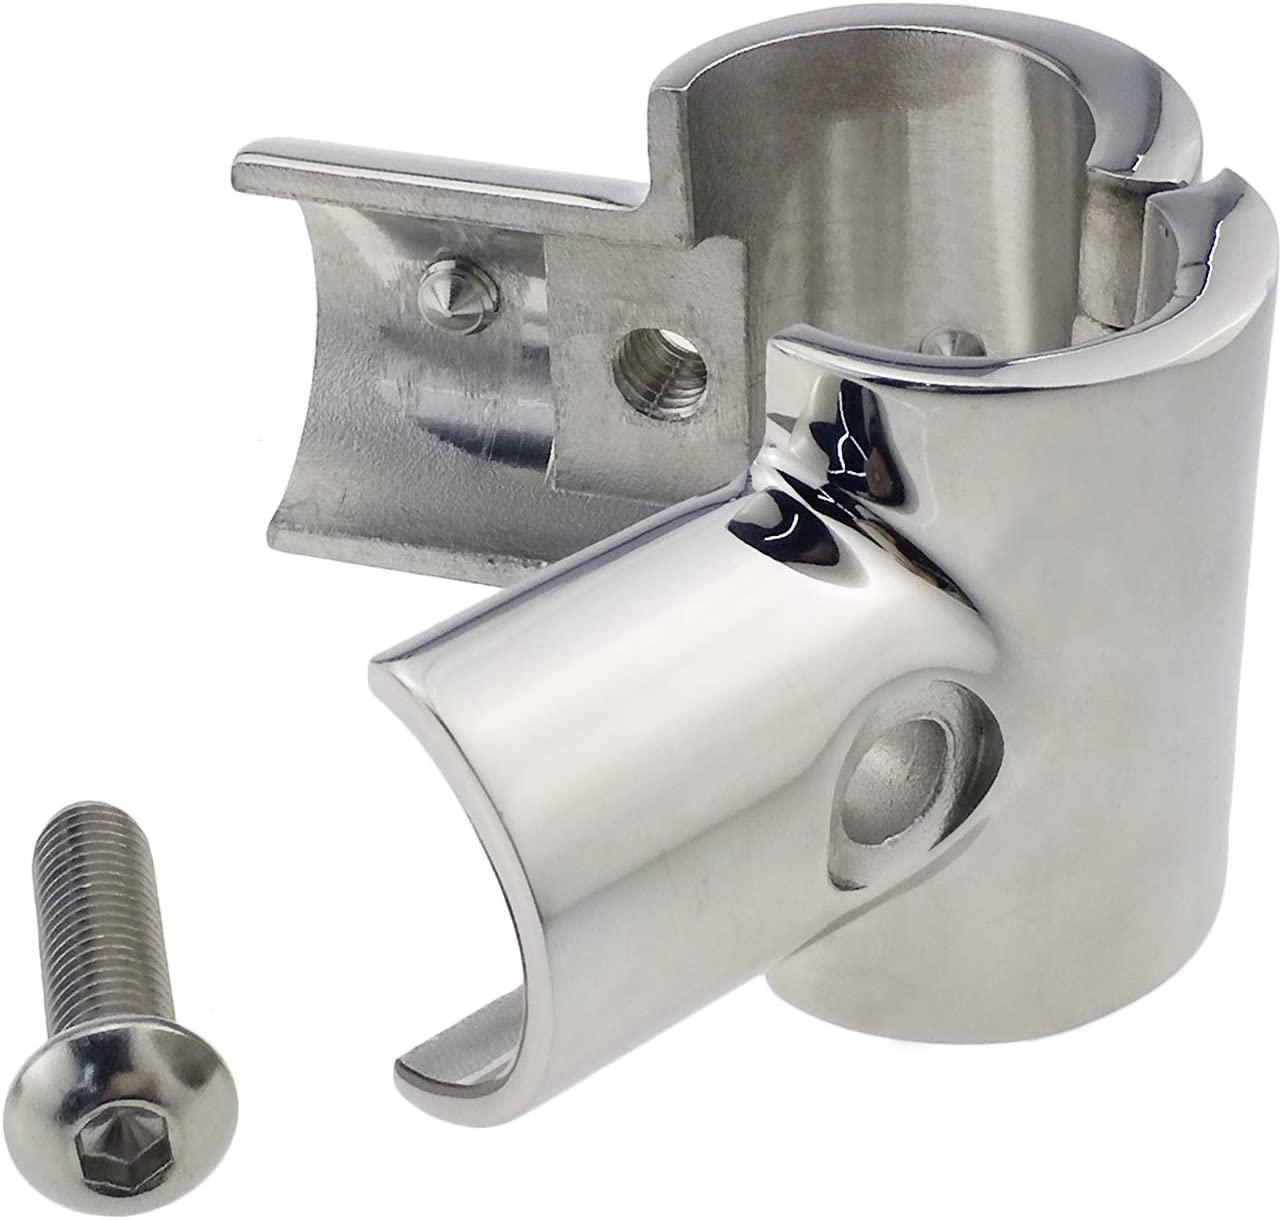 """1PC Stainless Steel Boat Hand Rail 60 Degree Tee Hardwares Fitting 7//8/"""" Tube New"""